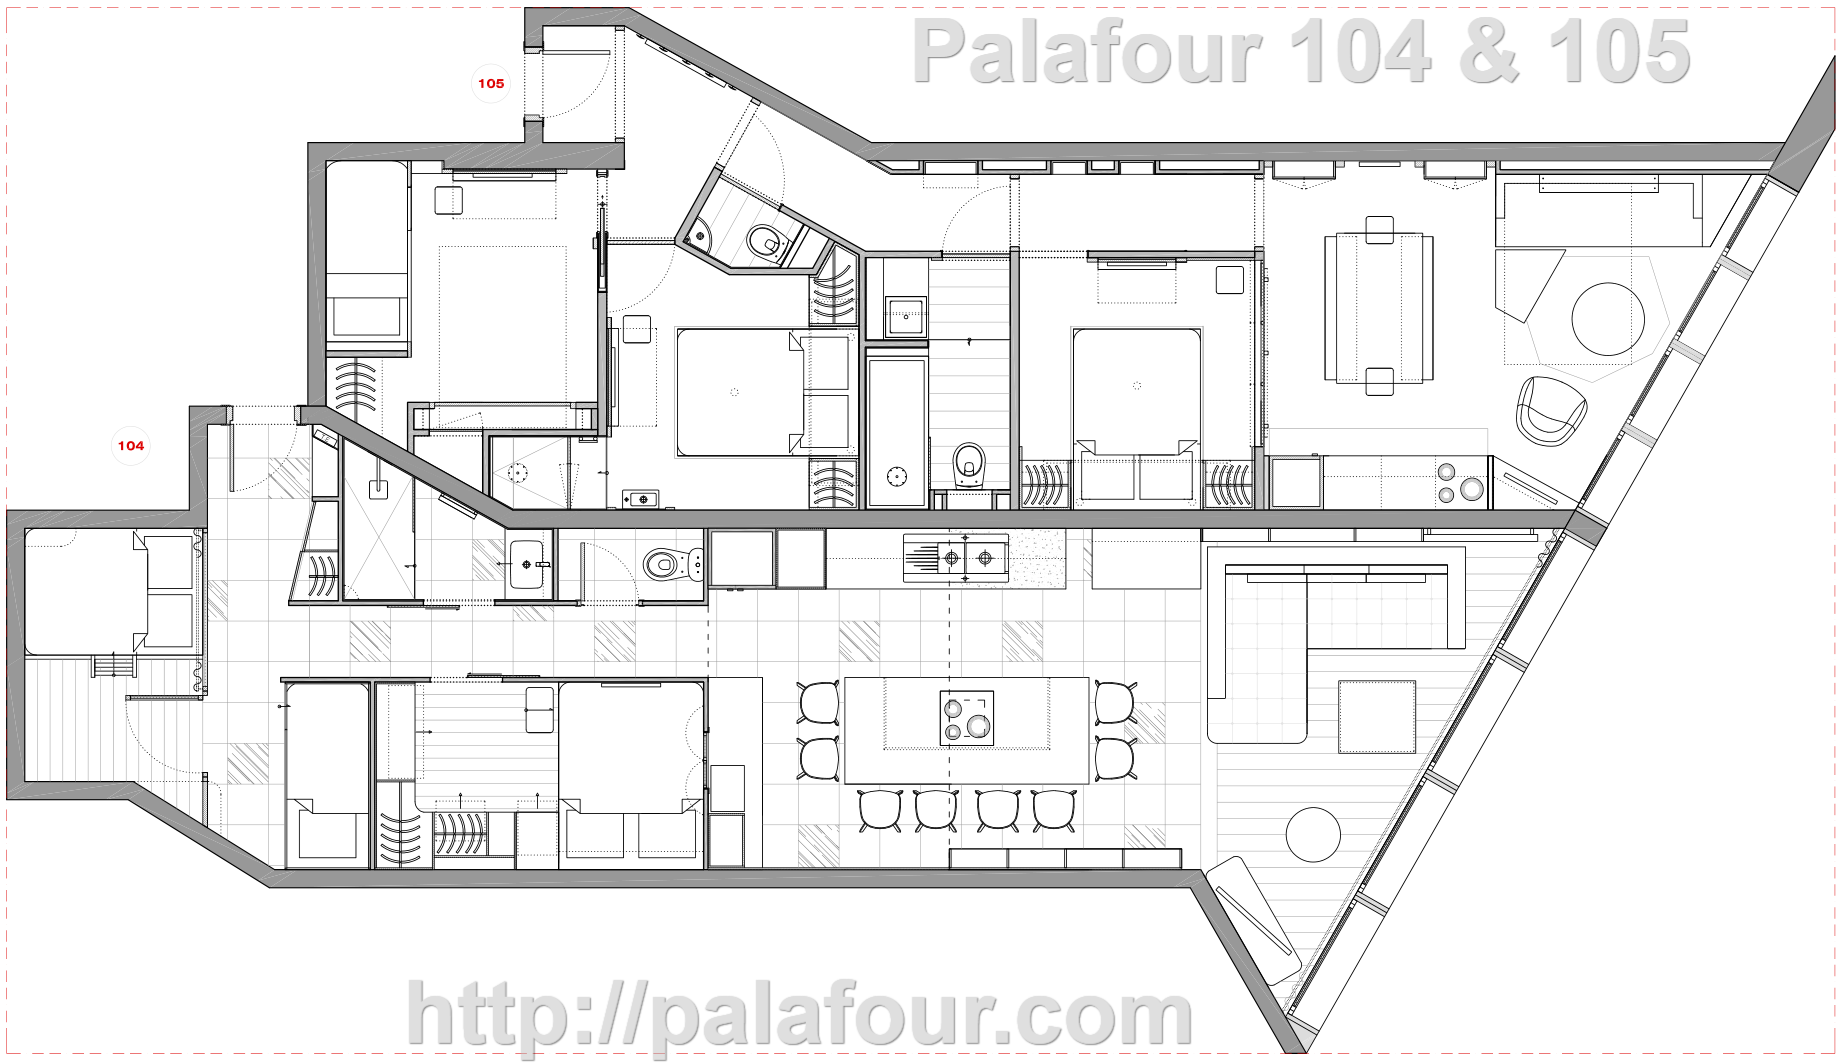 Plan des 2 appartements mitoyens Palafour 104 and Palafour 105